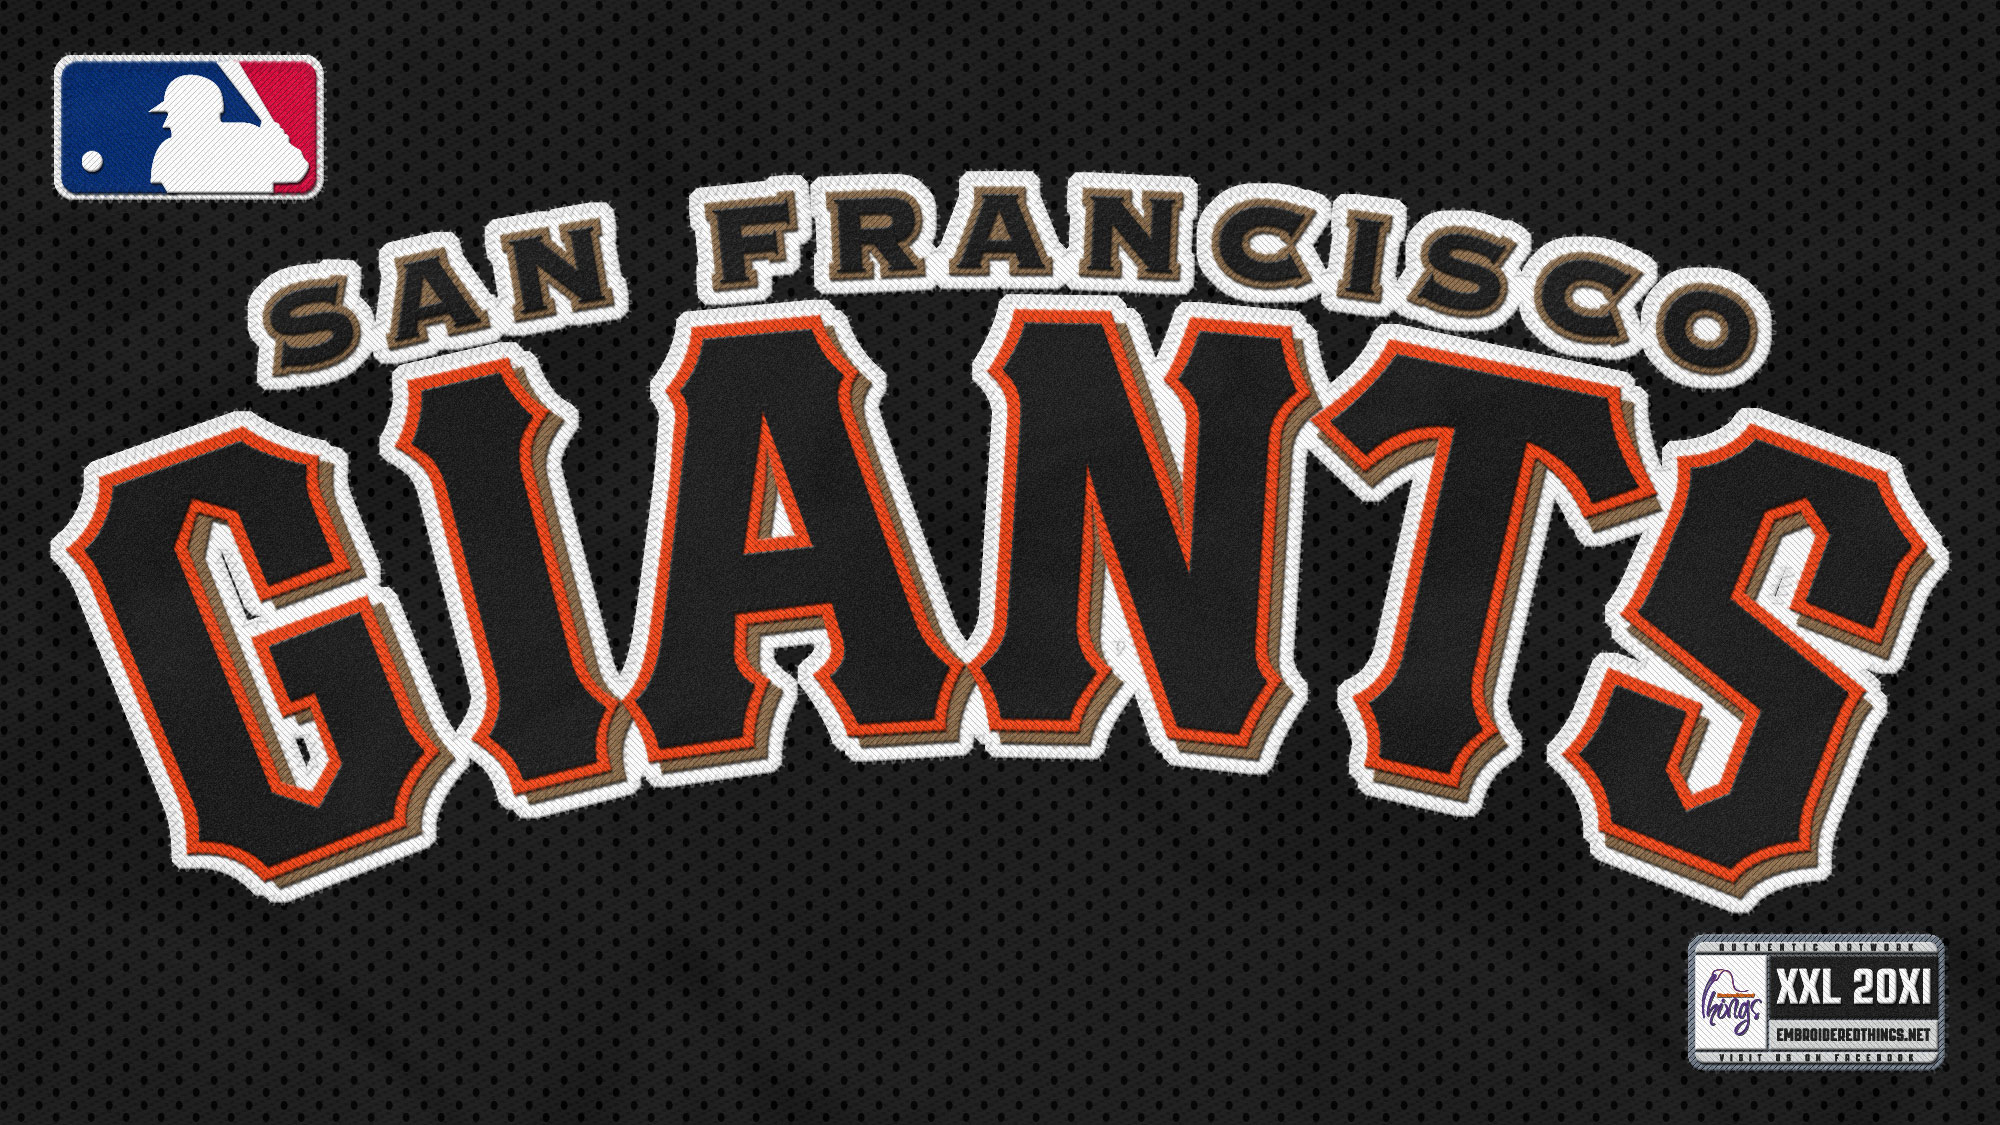 SAN FRANCISCO GIANTS mlb baseball 58 wallpaper background by 2000x1125